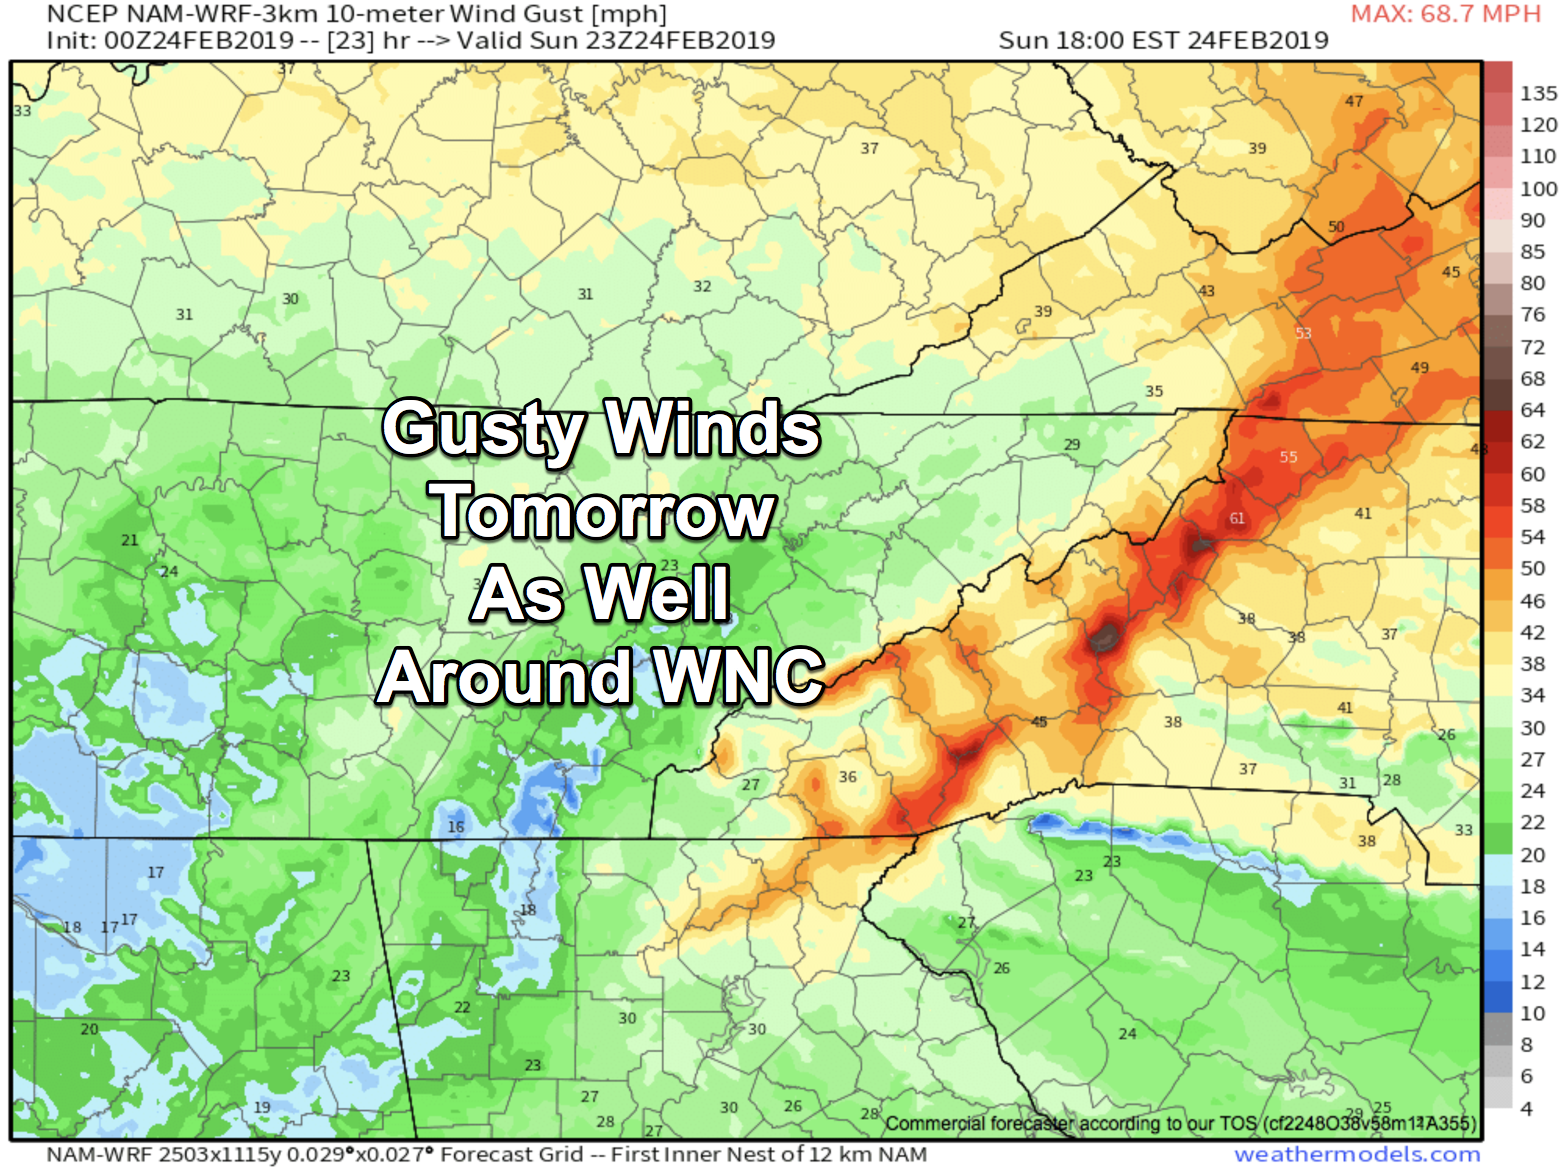 0z 3km NAM Wind Gusts Around WNC Tomorrow Showing 45+mph at AVL Airport Courtesy of  Weathermodels.com